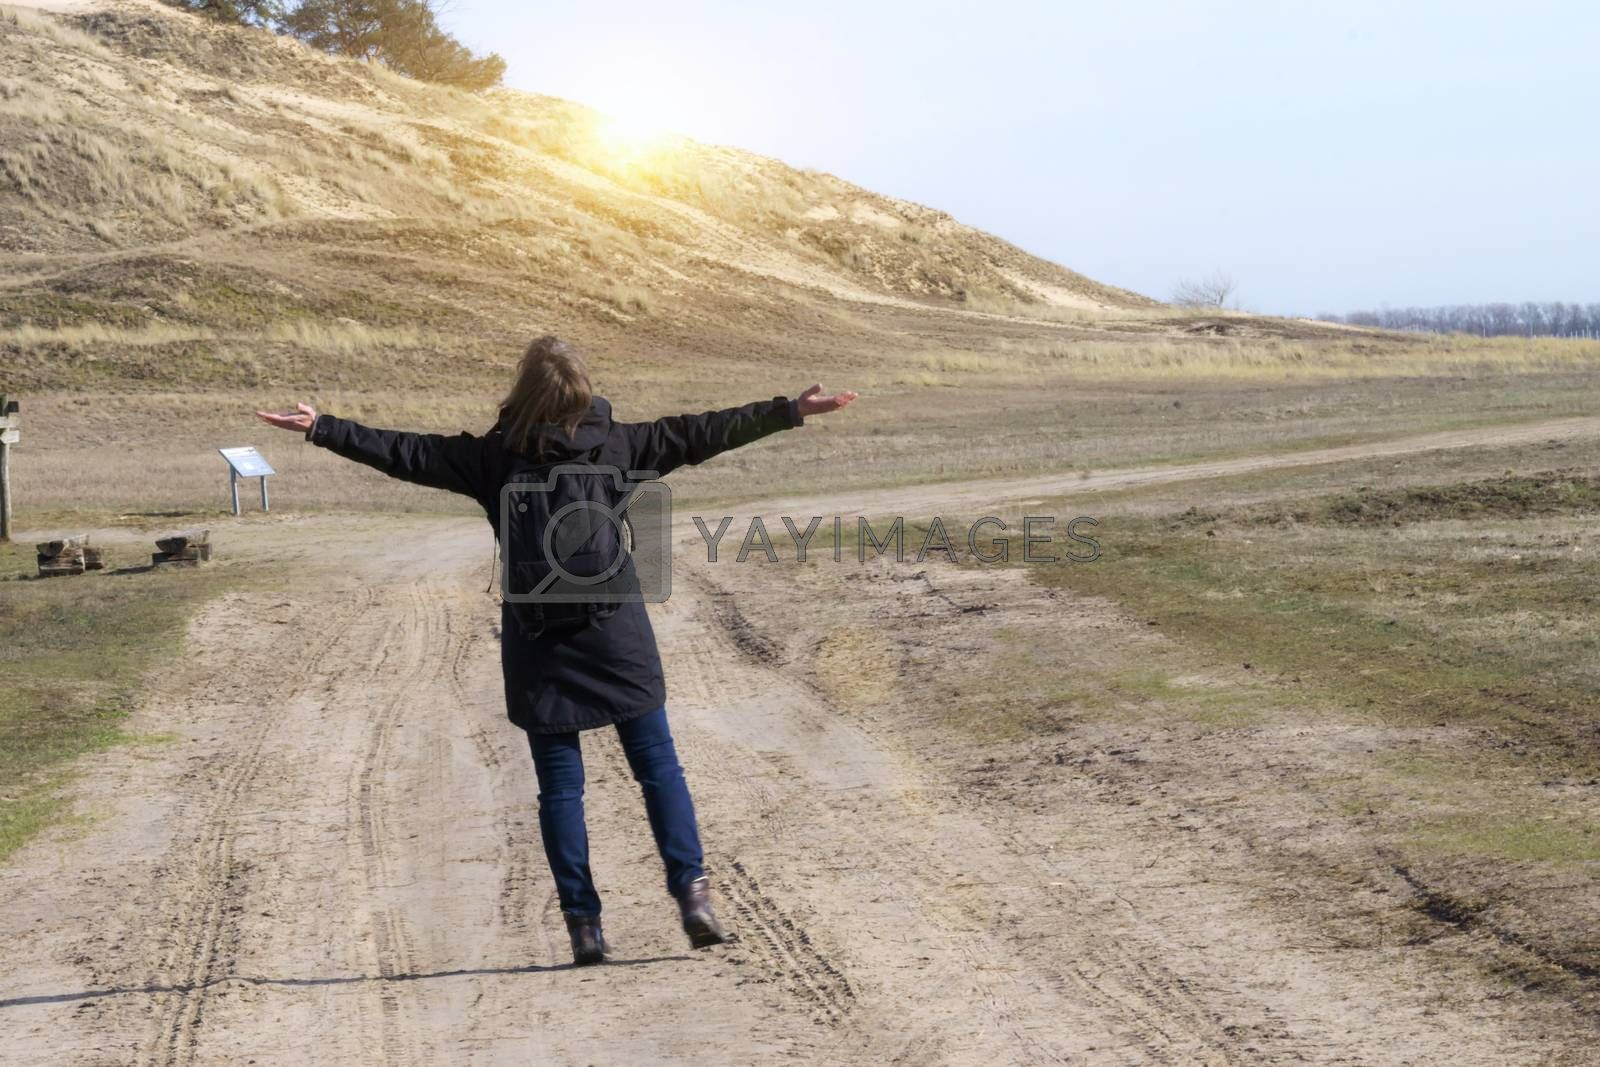 Caucasian woman in black coat arms raised on empty road towards sunset